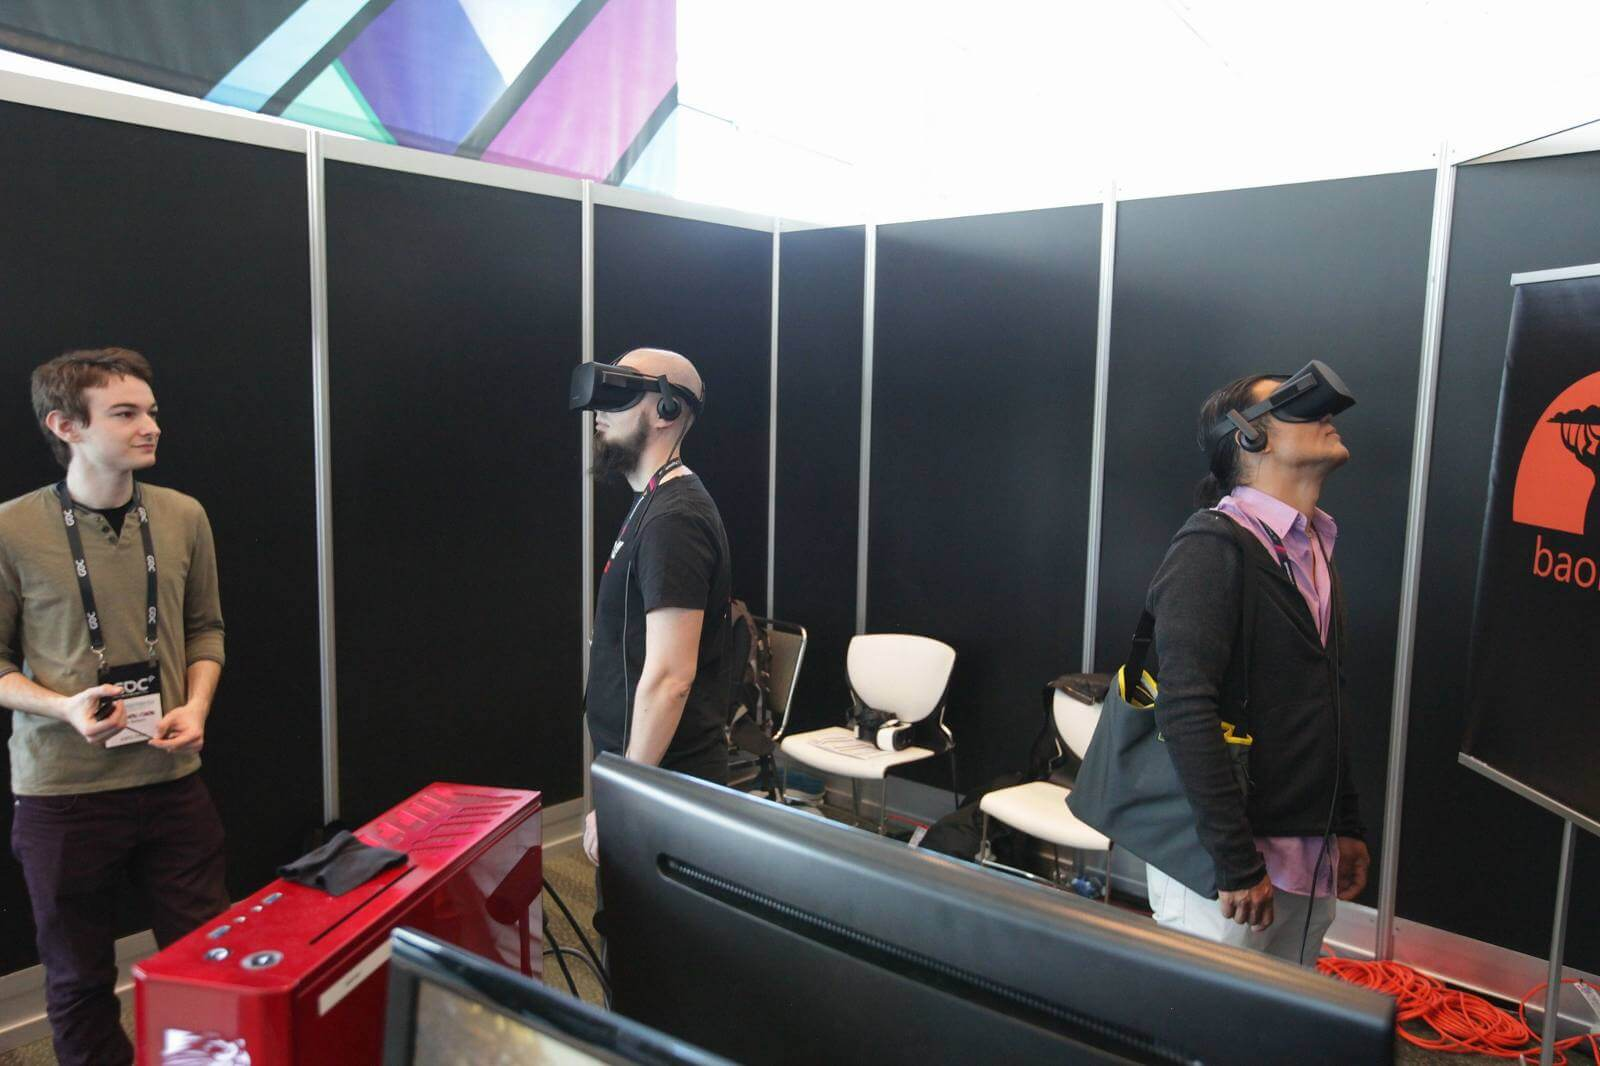 Virtual reality allows providing trade show visitors lively experience and showing more products.